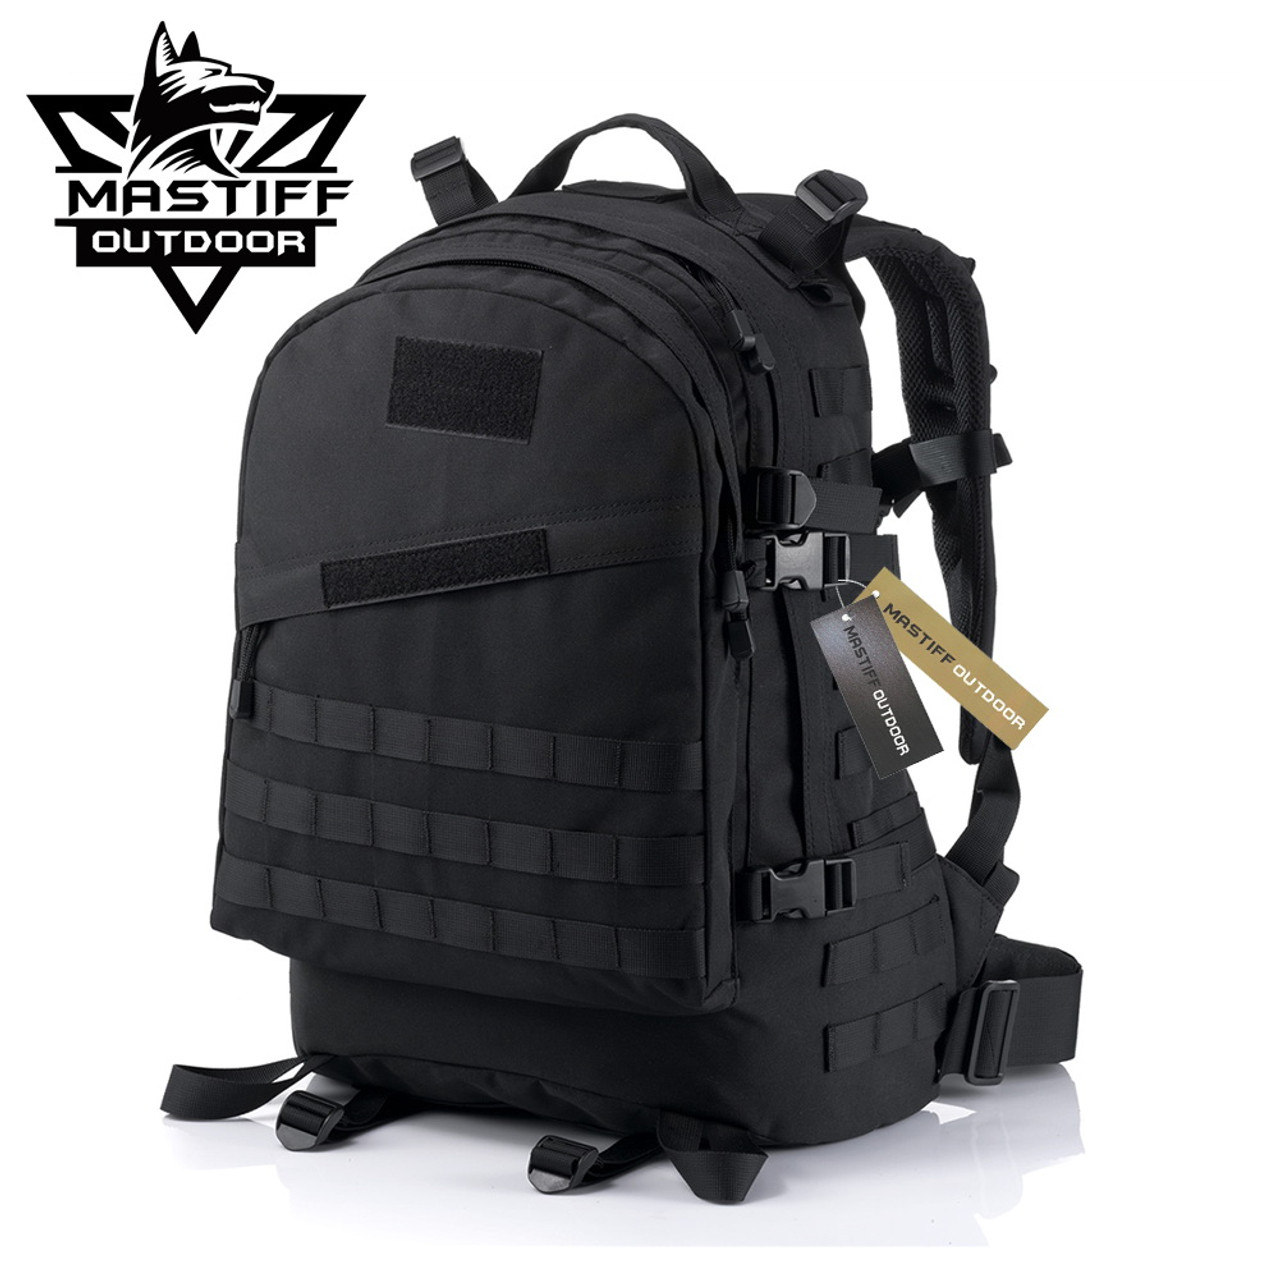 aa82a878a Mastiff Outdoor Tactical Everyday Backpack Military MOLLE Camping Rucksack  - Sword N Armory